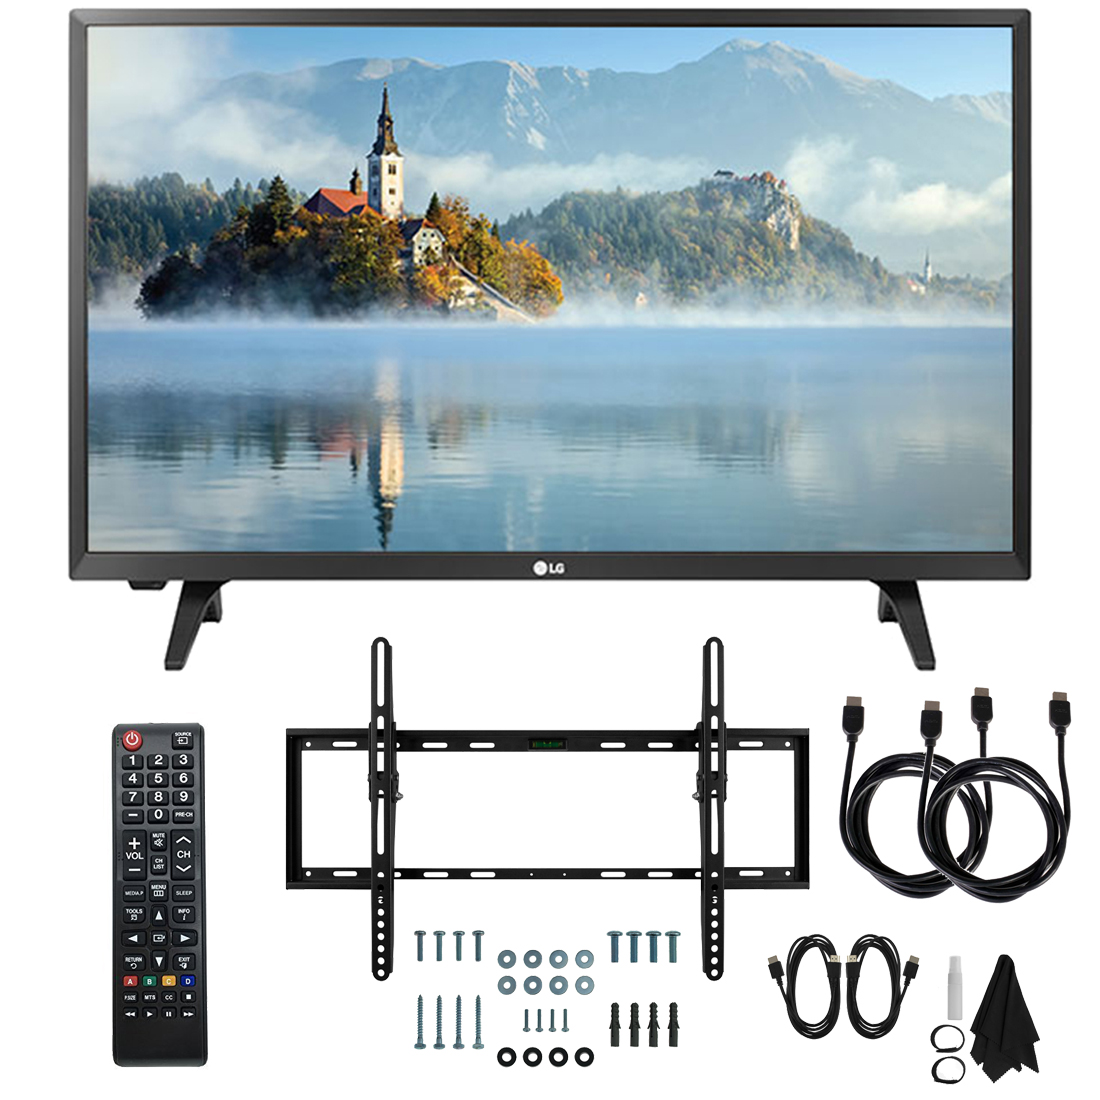 """LG 28LJ430B-PU 28"""" Class HD 720p LED TV (2017 Model) with Slim Flat Wall Mount Kit and Two (2) 6 Foot HDMI Cables Ultimate Bundle"""